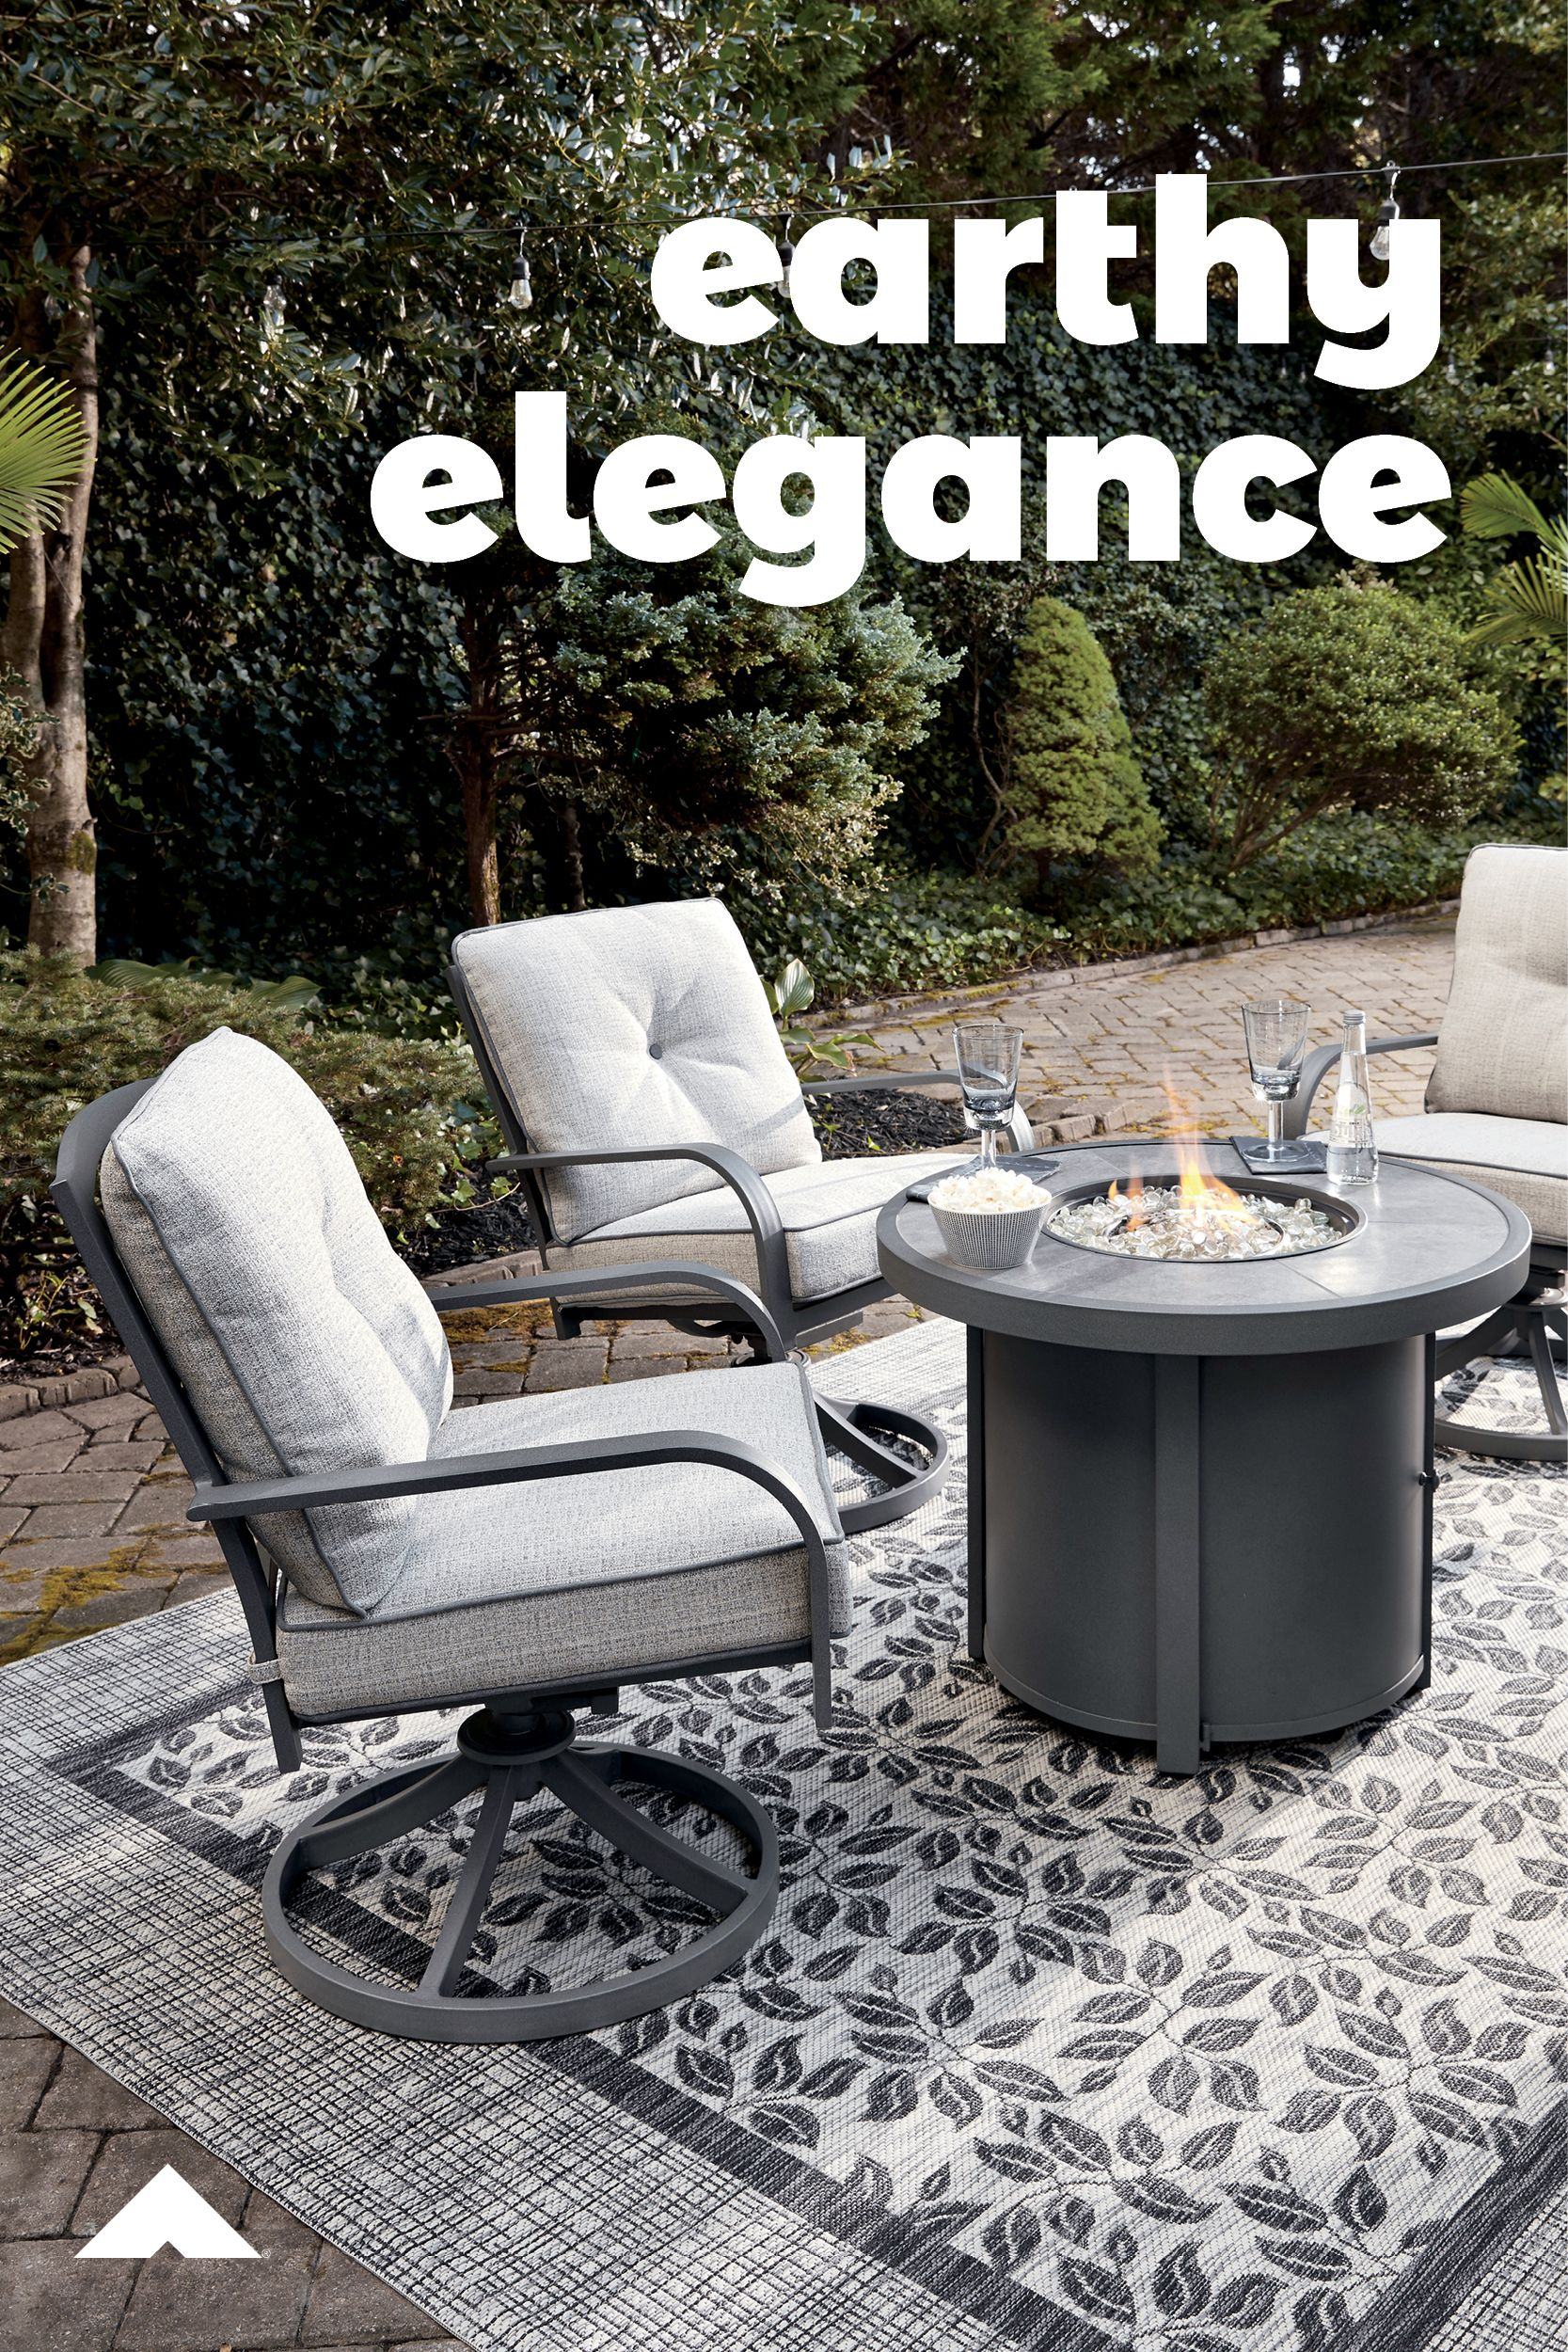 Donnalee Bay Round Fire Pit Table with Swivel Chairs ... on Clare View Beige Outdoor Living Room id=30915